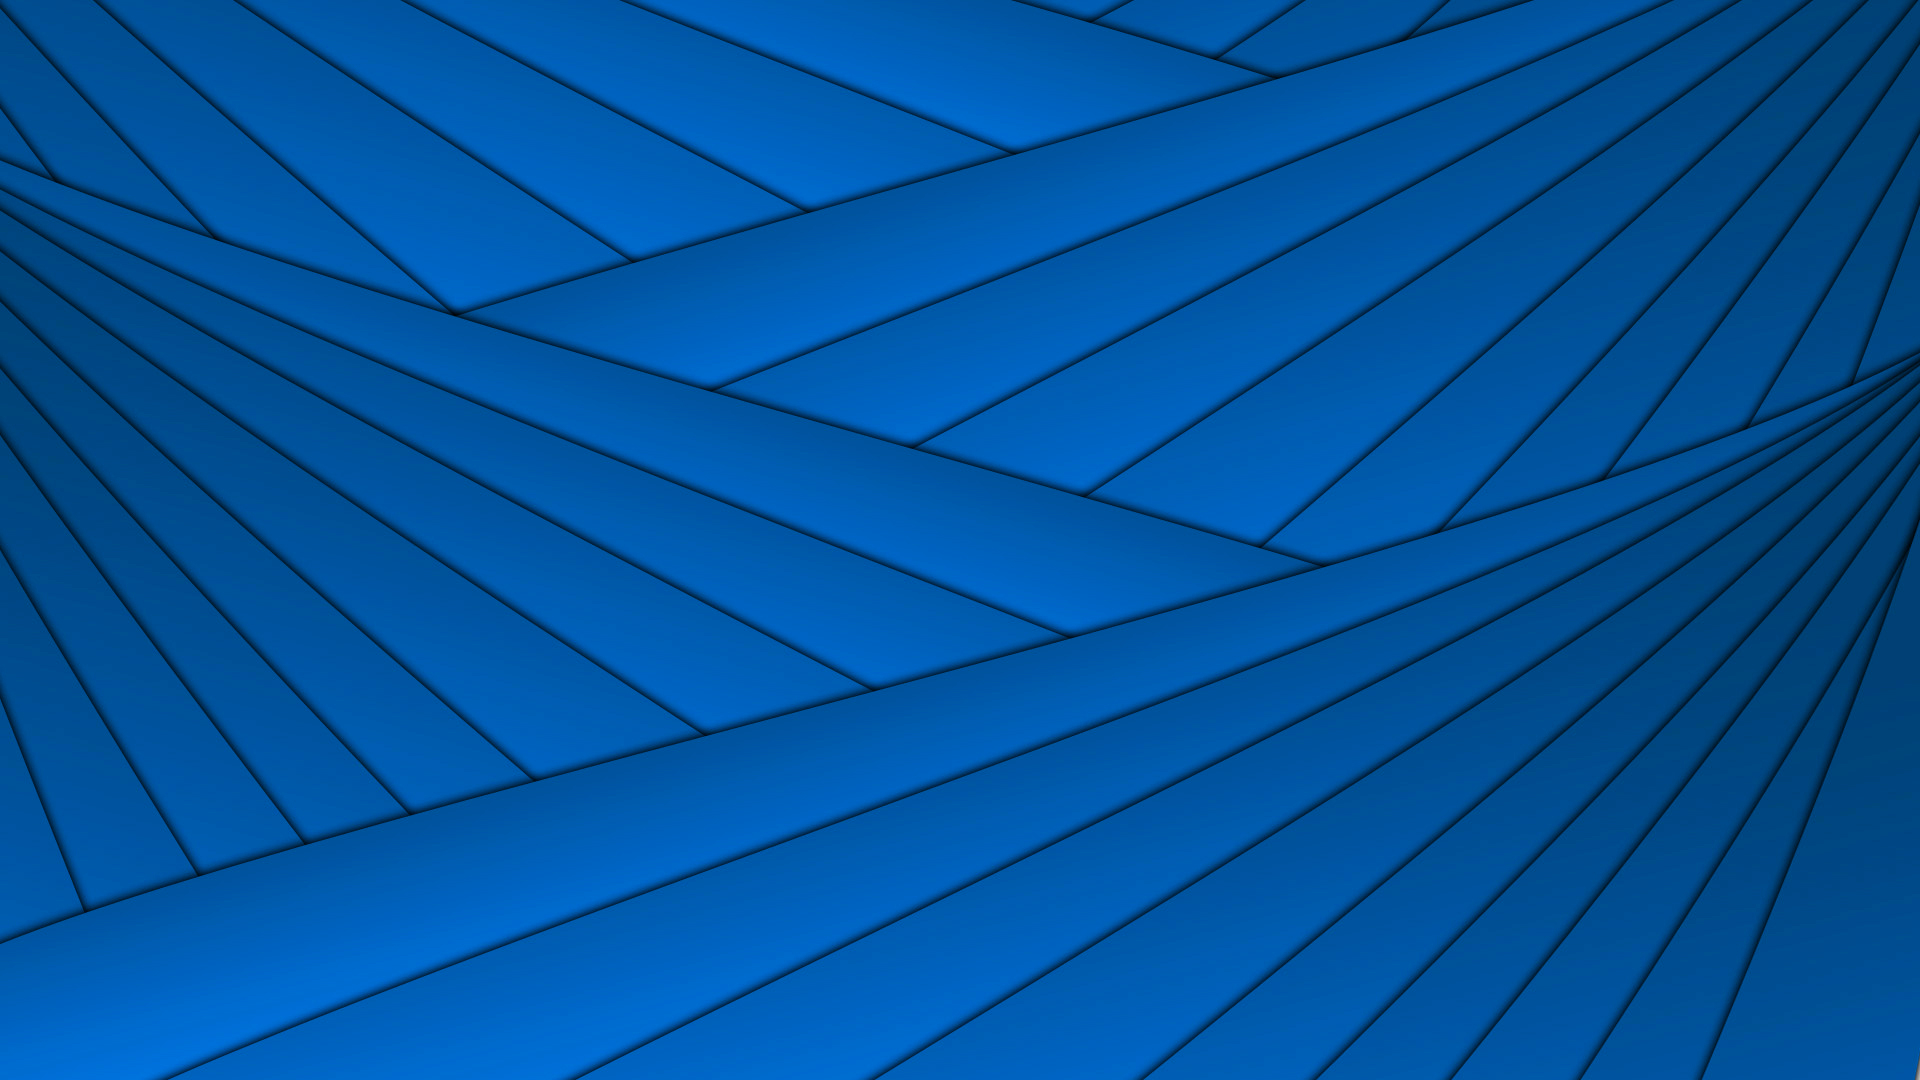 texture blue lines vector rays background hd wallpaper 1920x1080